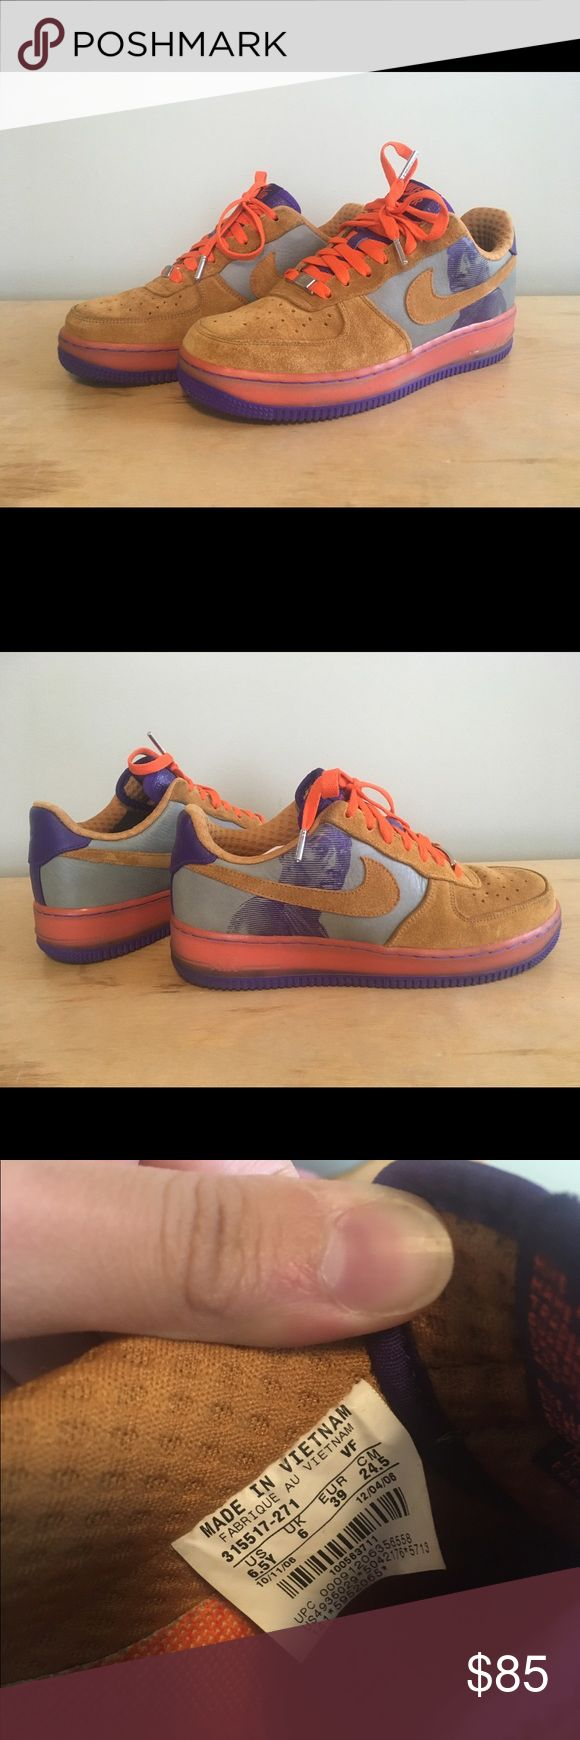 Amare Stoudemire Nike Air Force 1 Size 6.5 Y These are a men's size 6.5. Fit like a women's size 8. Good for wide feet. Rare, limited edition shoe. Look like they've been worn only a handful of times. Good condition. Nike Shoes Sneakers